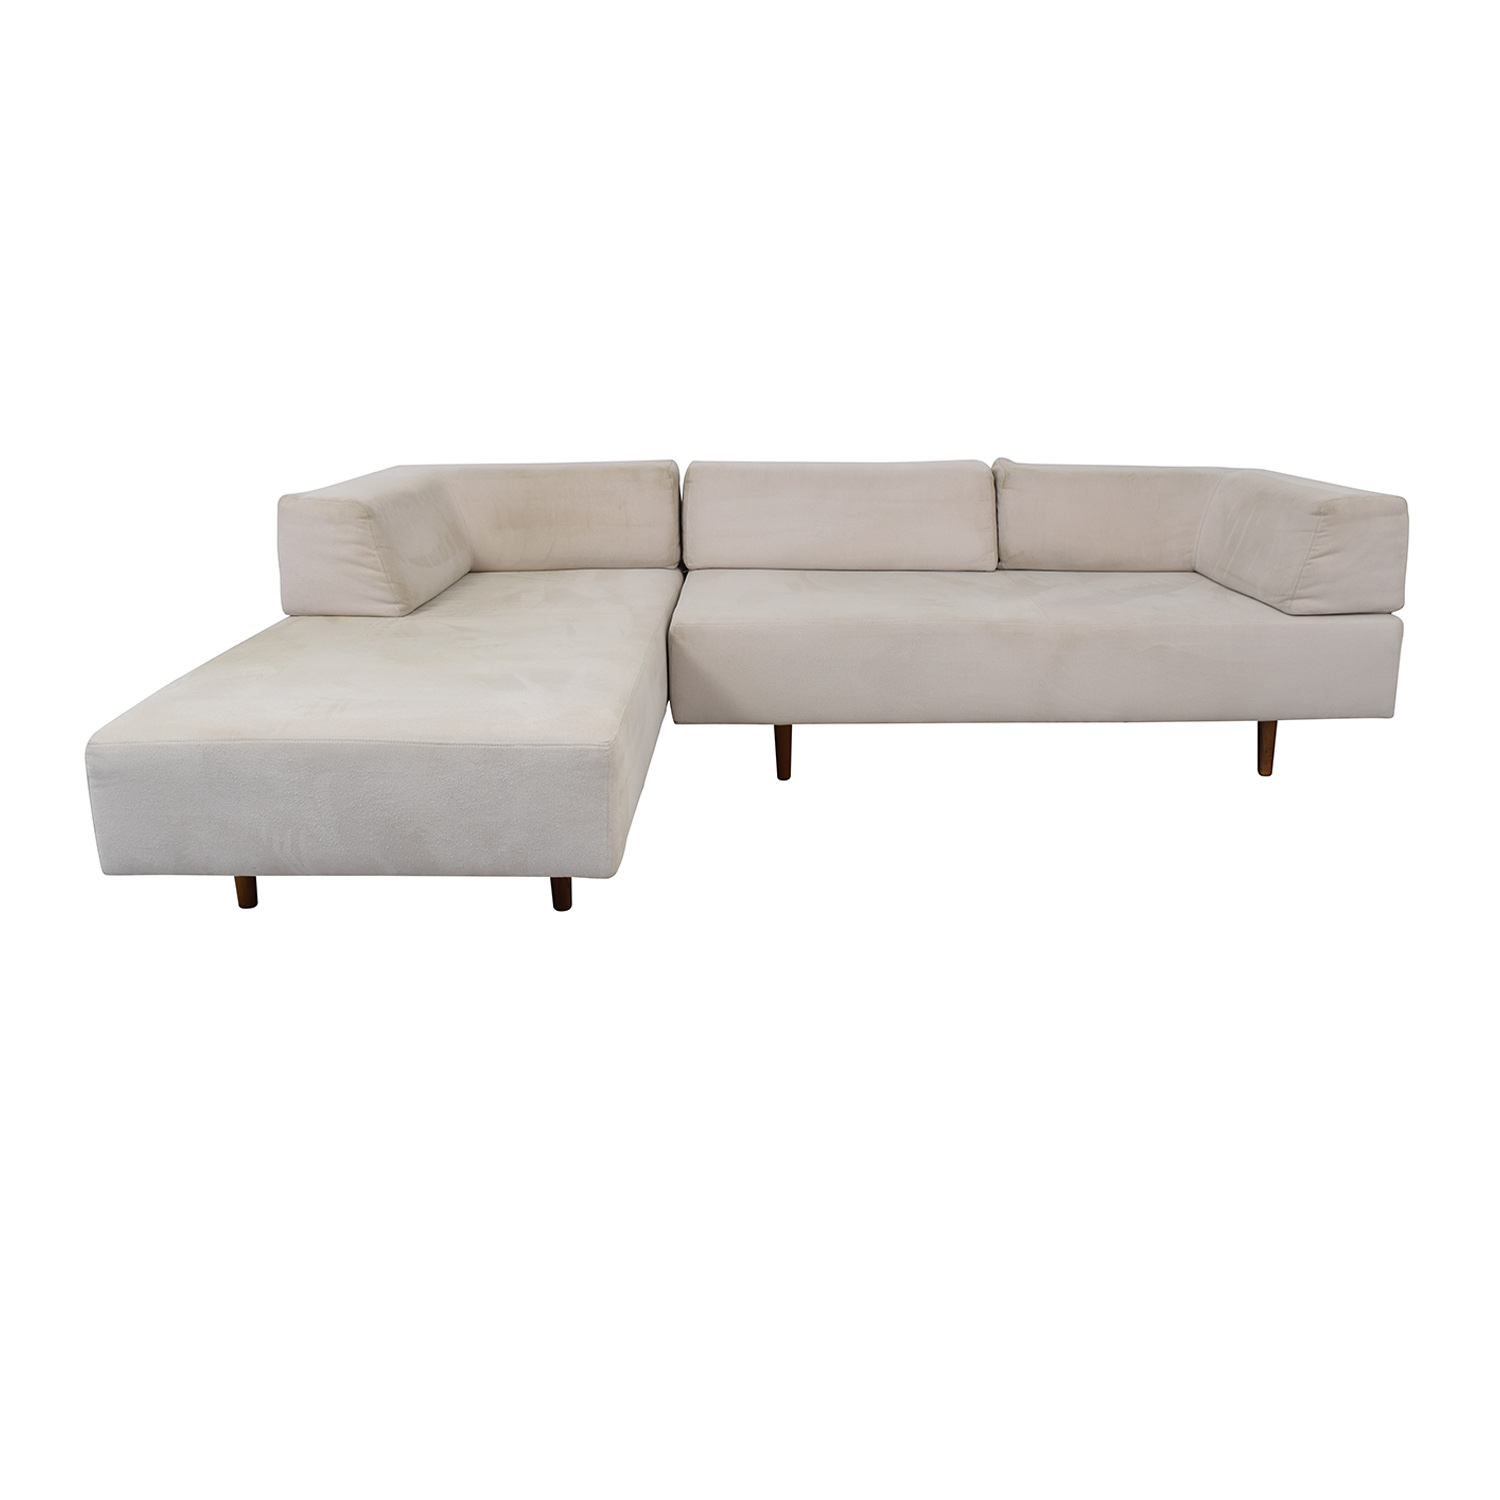 63% OFF - West Elm West Elm Tillary Sectional Sofa and Chaise Lounge ...